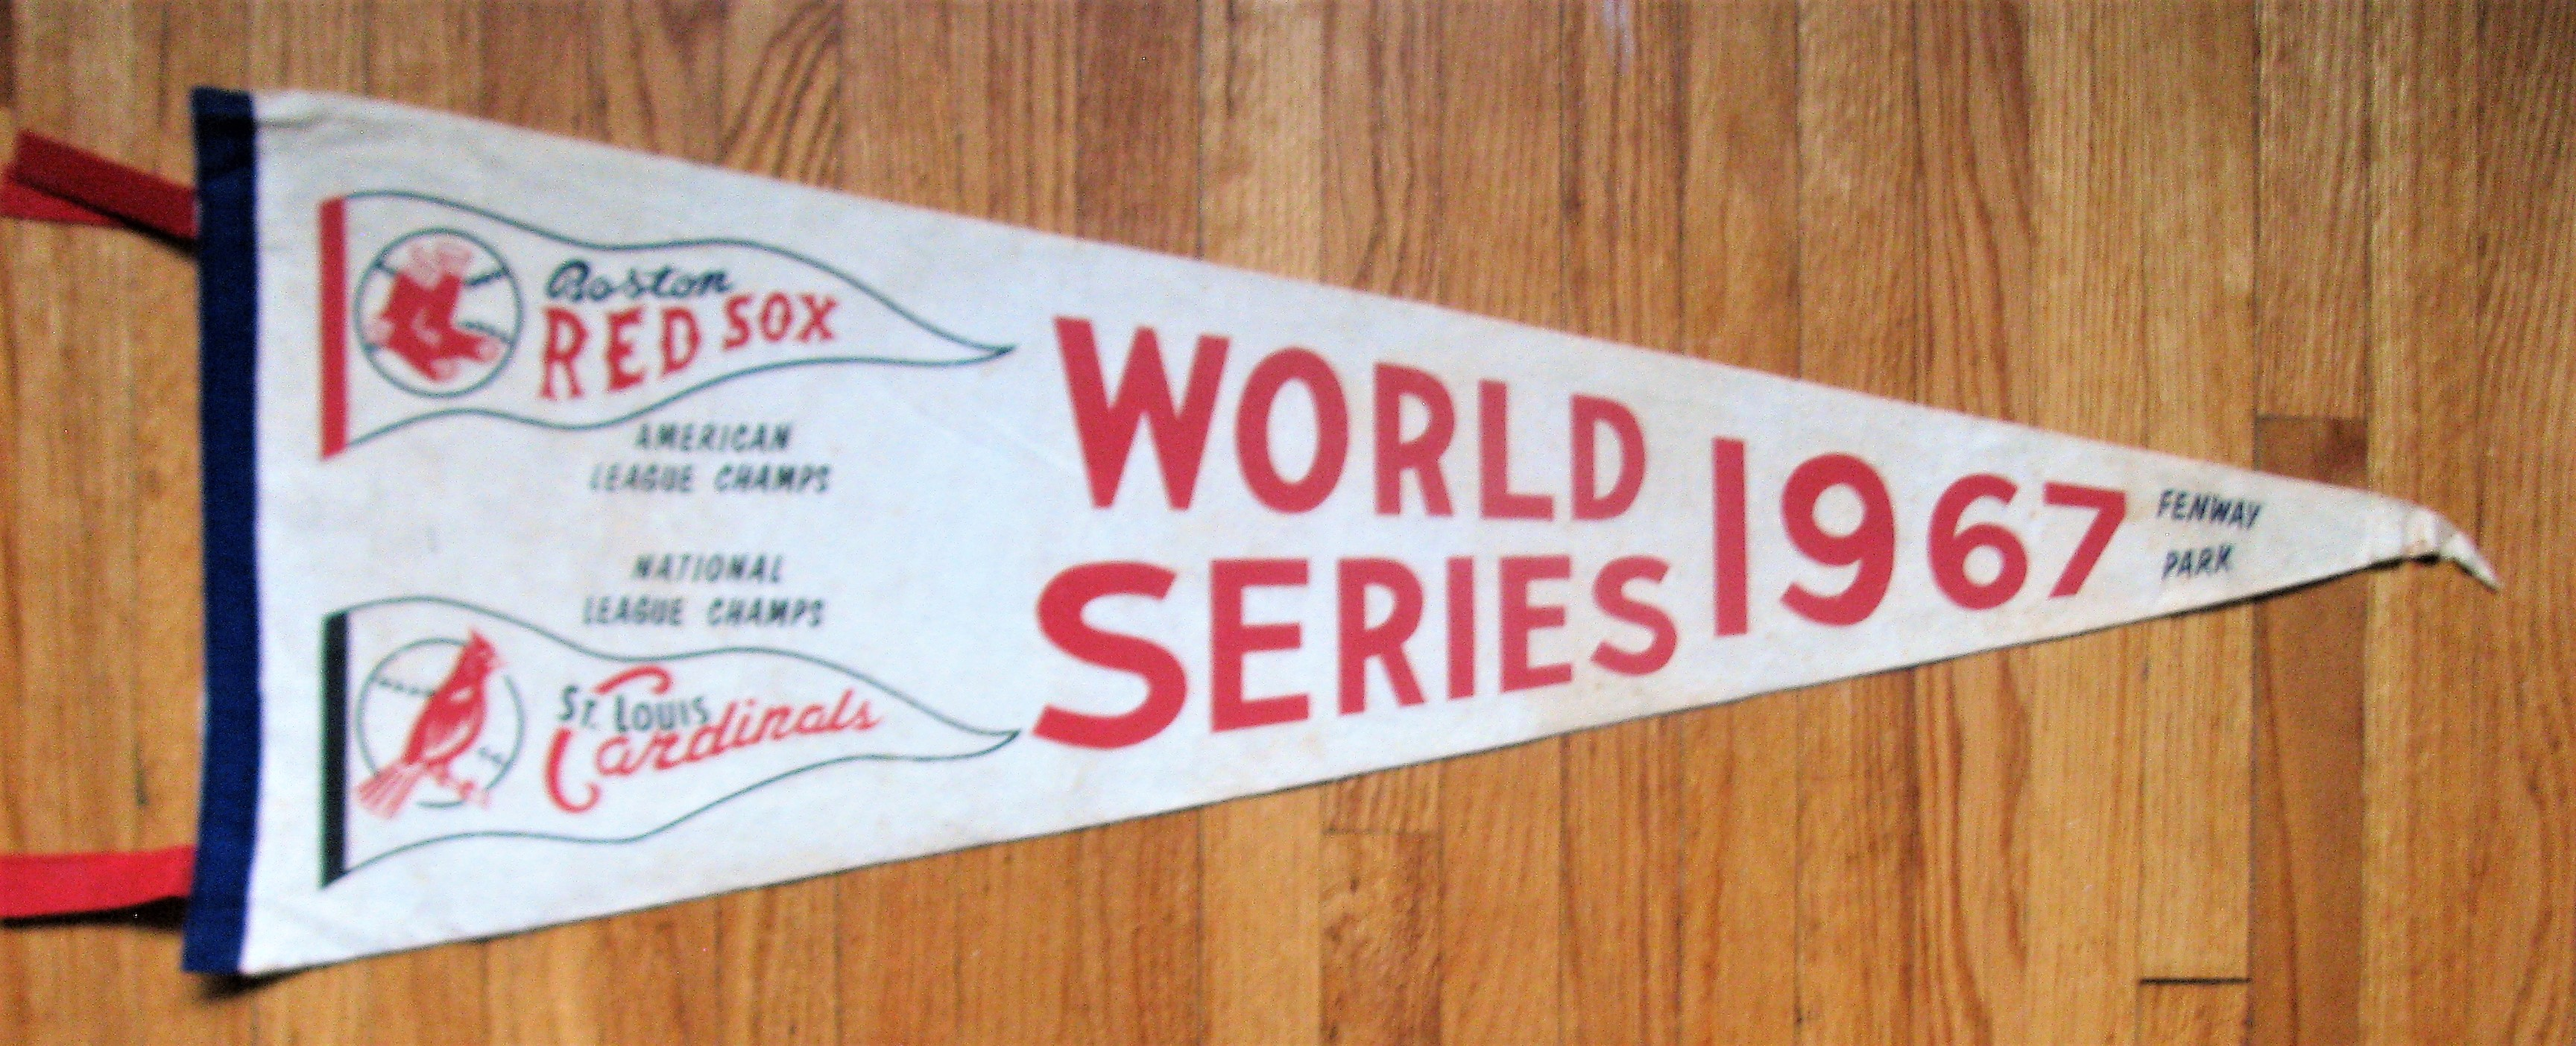 cardinals red sox world series